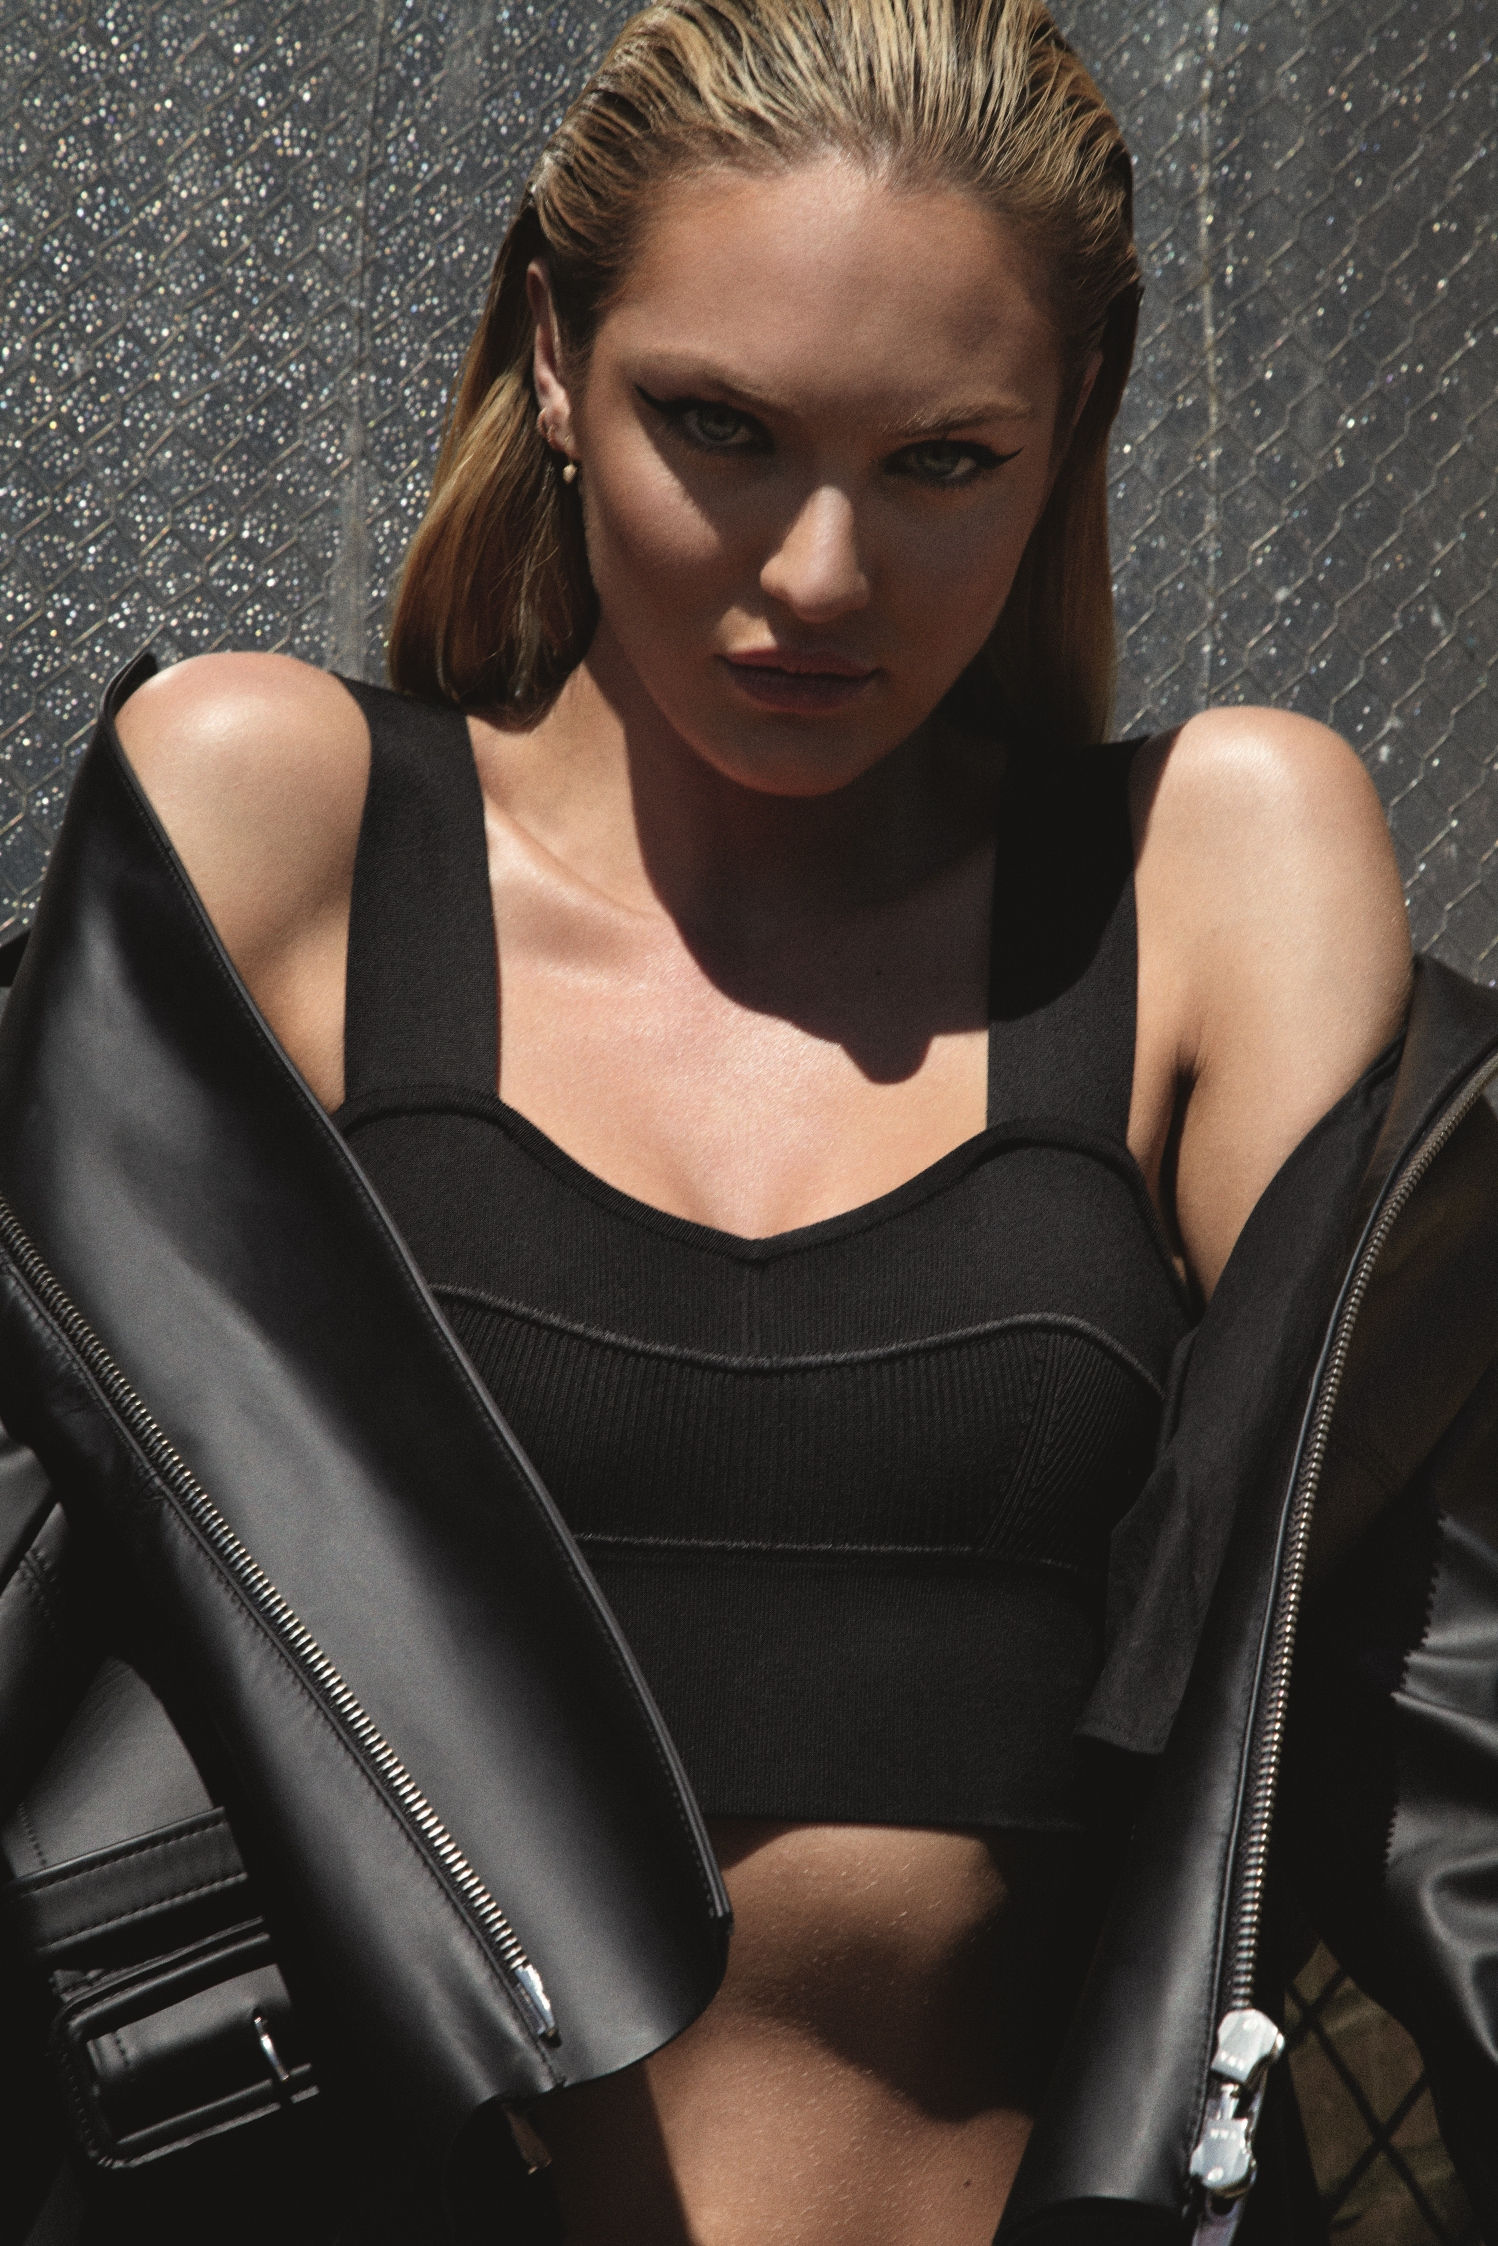 candice swanepoel � collier schorr photoshoot for muse